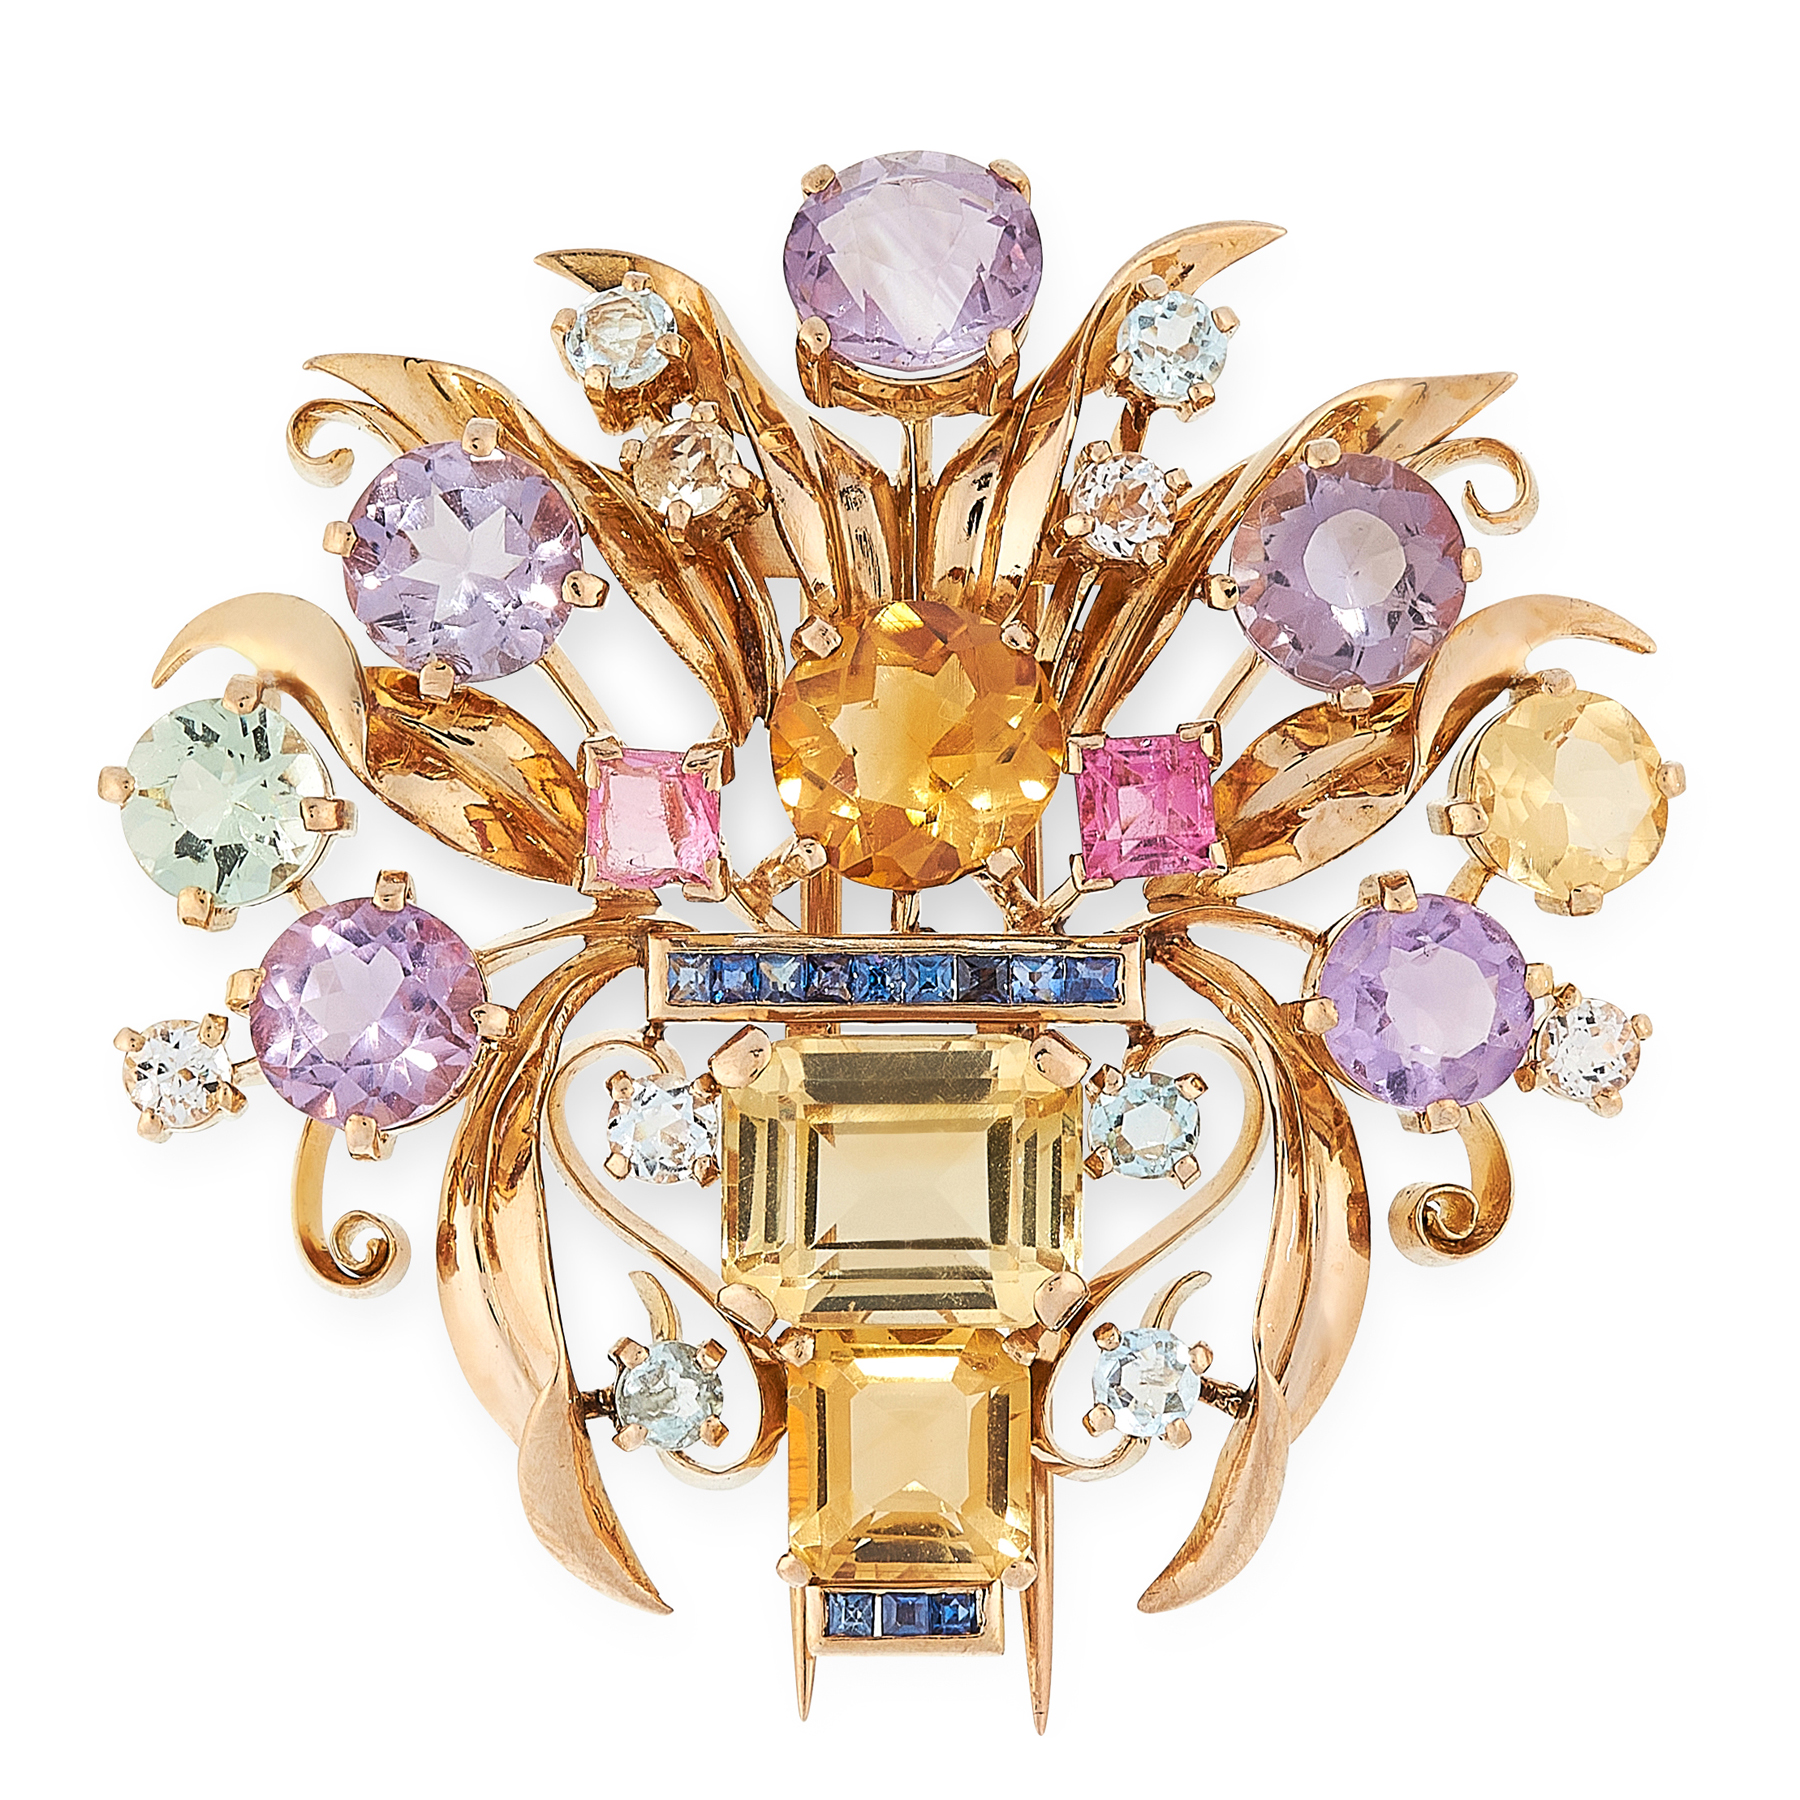 A VINTAGE JEWELLED GIARDINETTO BROOCH in yellow gold, designed as a basket of flowers, jewelled with